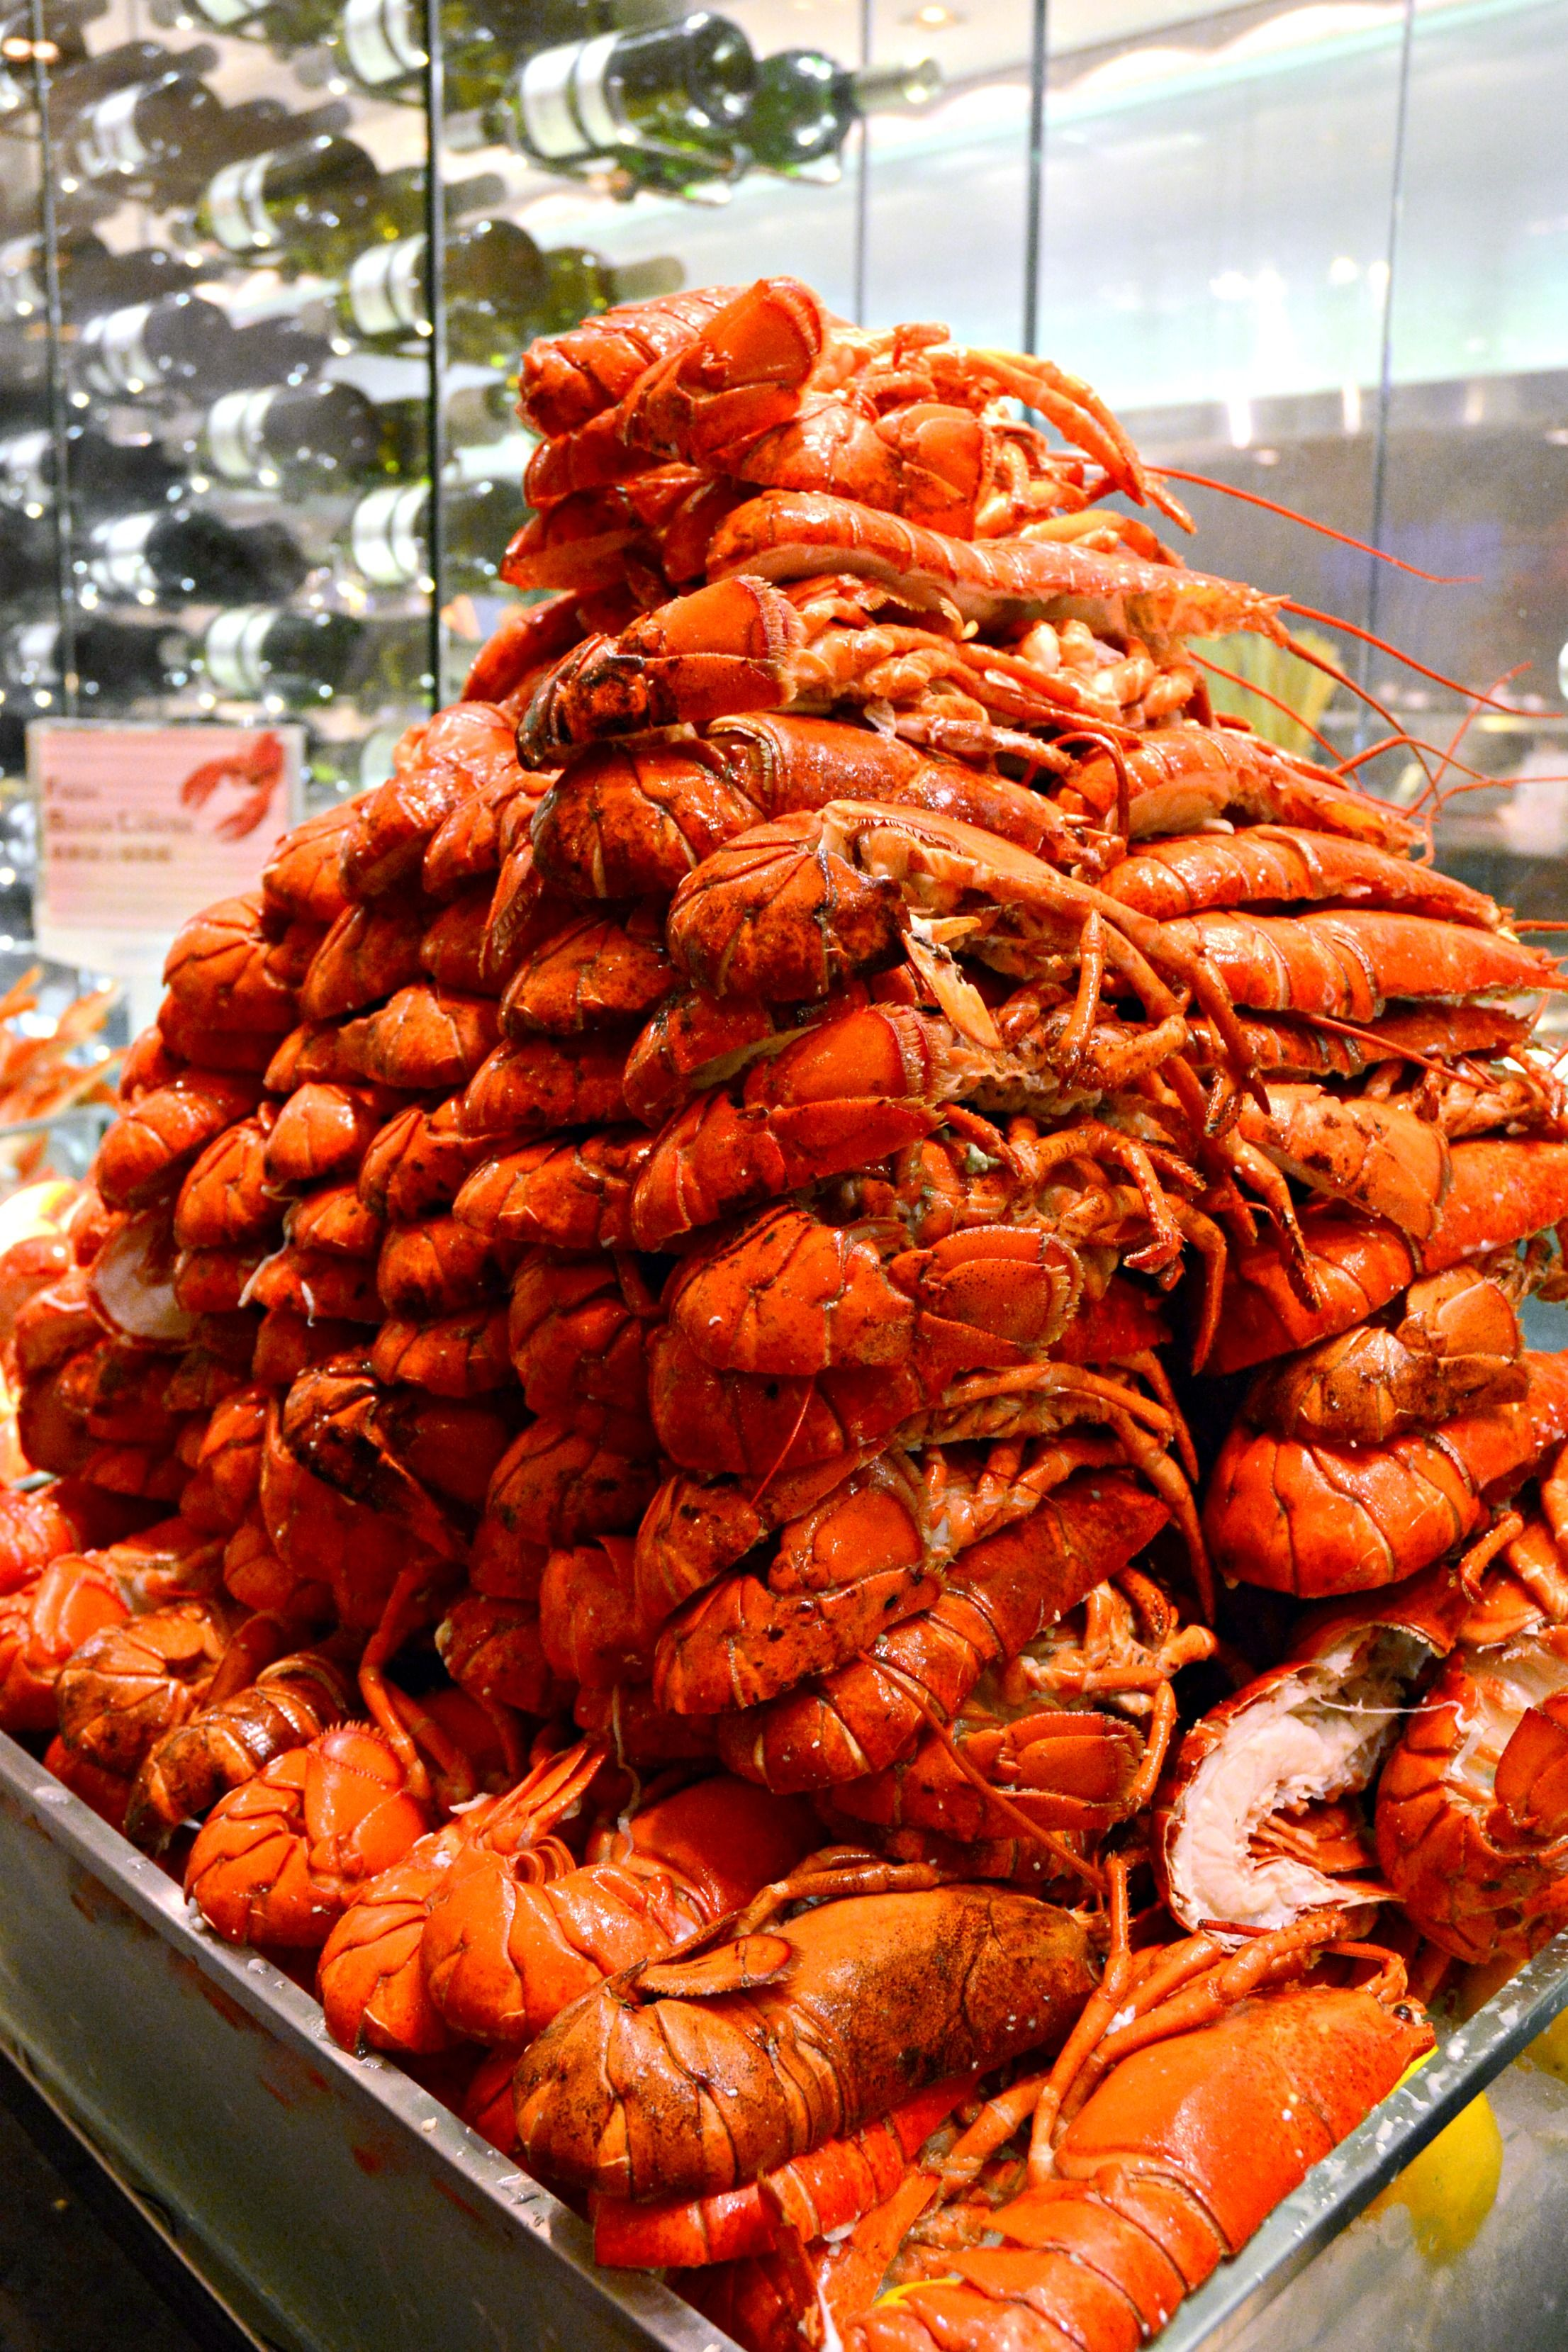 lobsters at lobster buffet yamm food in hong kong in 2019 rh pinterest com nordic lodge seafood buffet in rhode island nordic lodge seafood buffet in rhode island